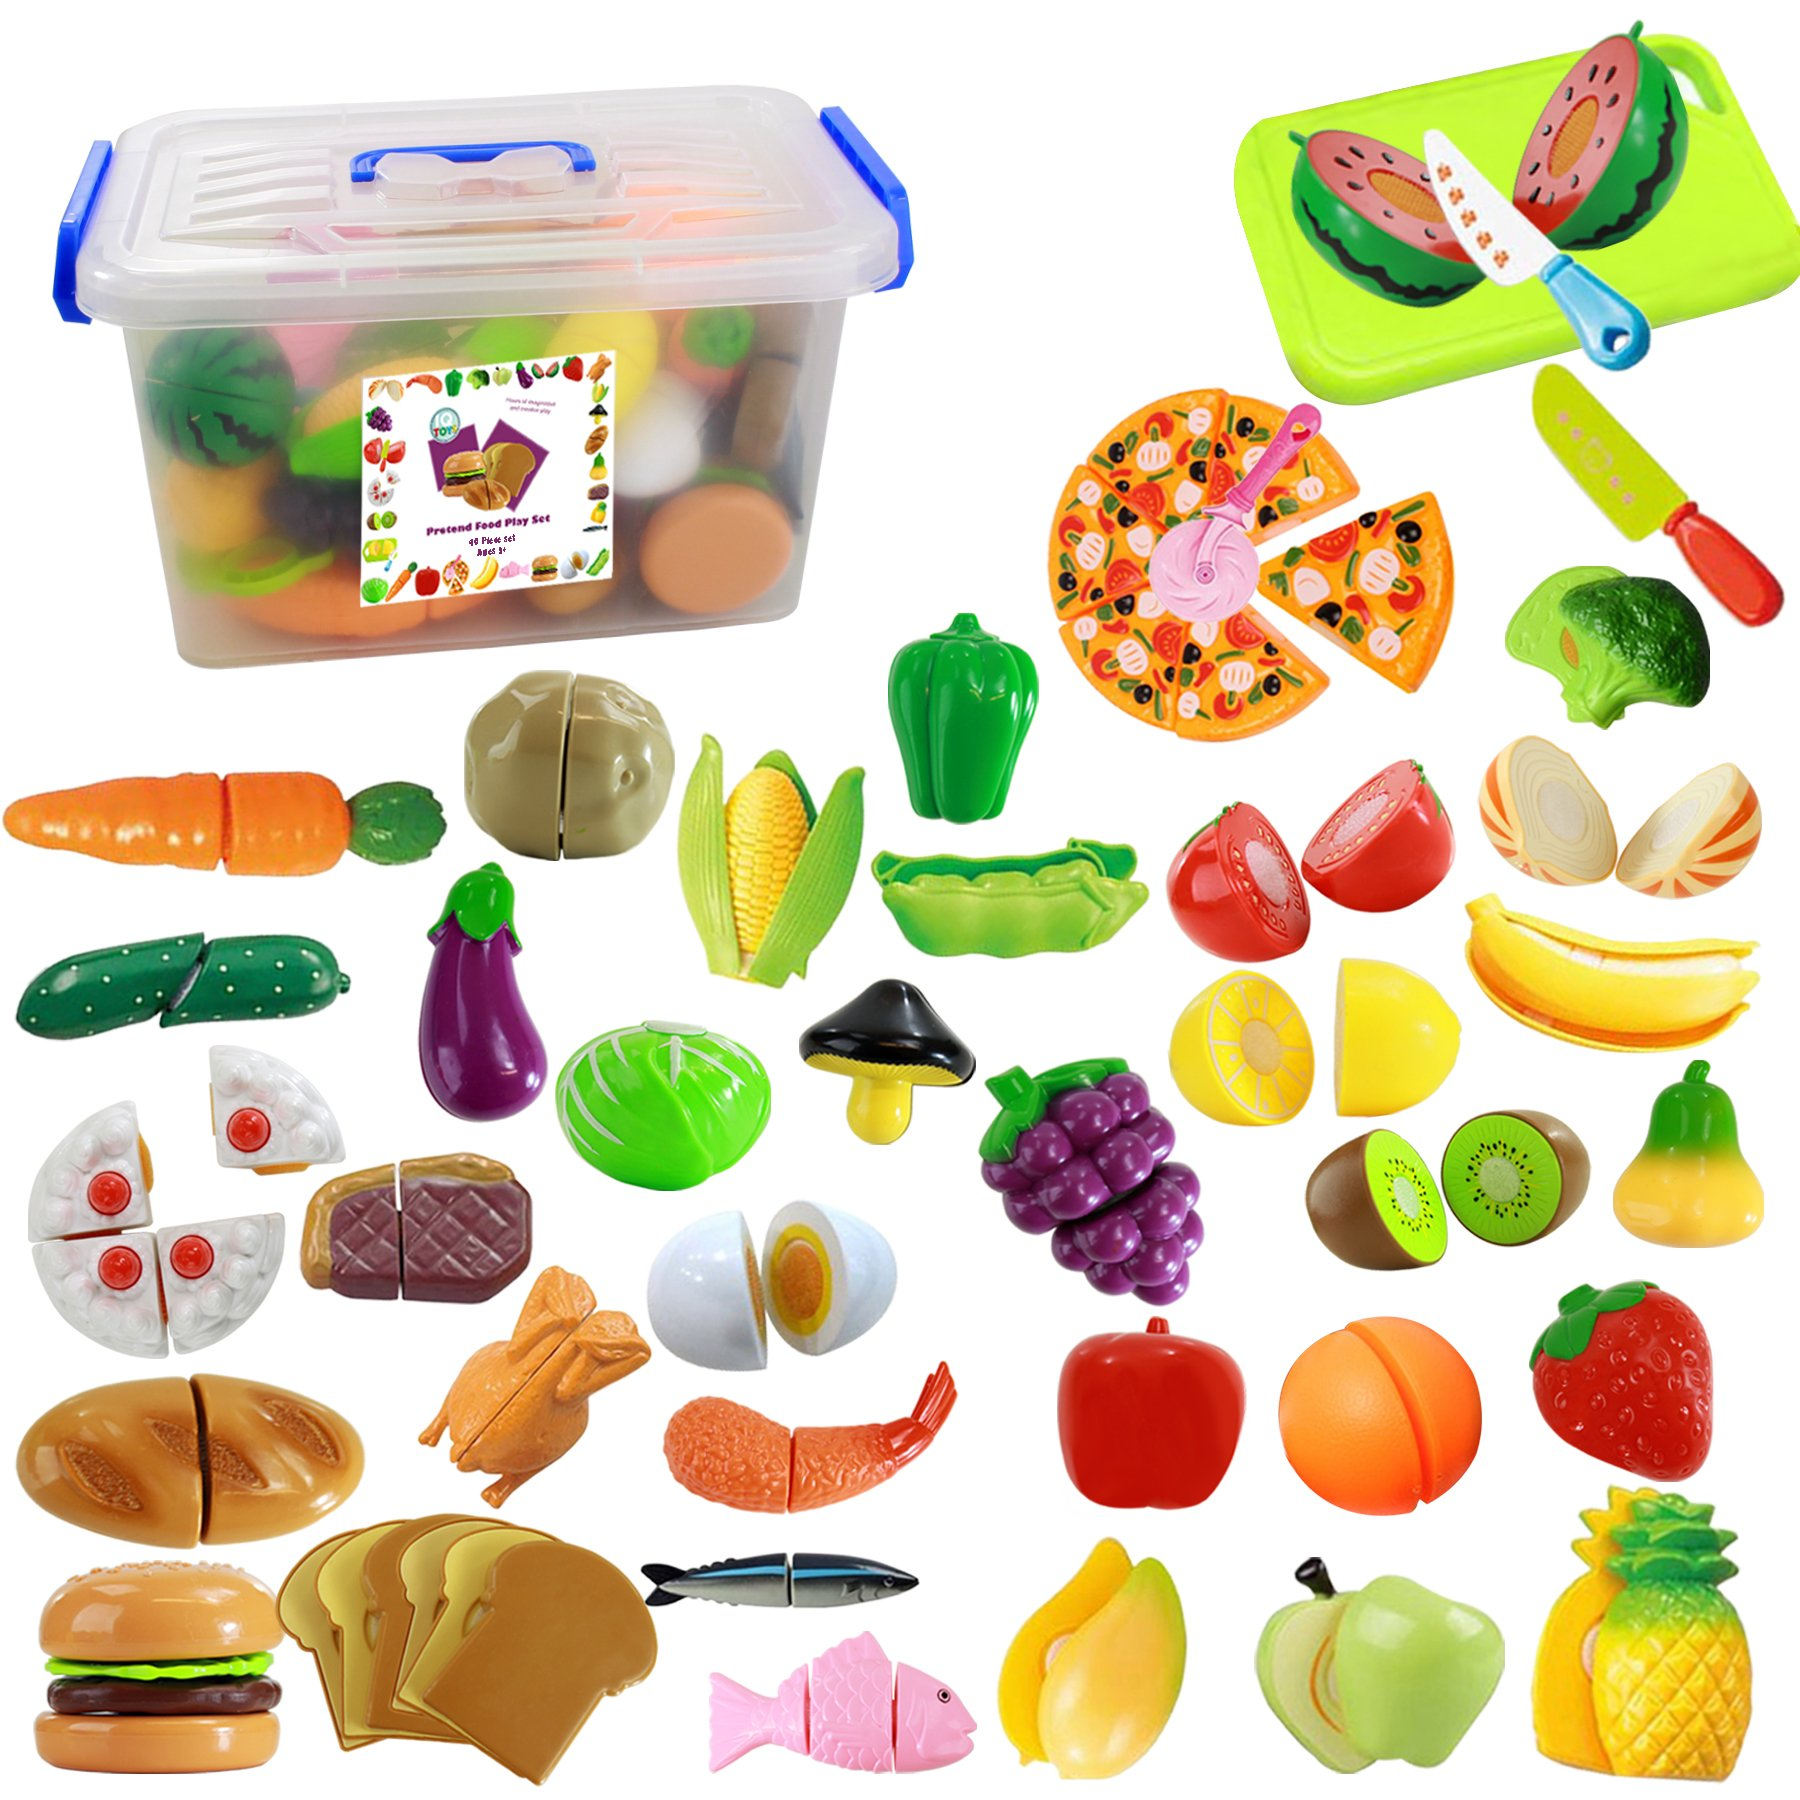 IQ Toys 40 Piece Complete Pretend Cutting Food Playset for Kids, Variety of 36 Food and 4 Cutting Accessories, Includes A Storage Container by IQ Toys